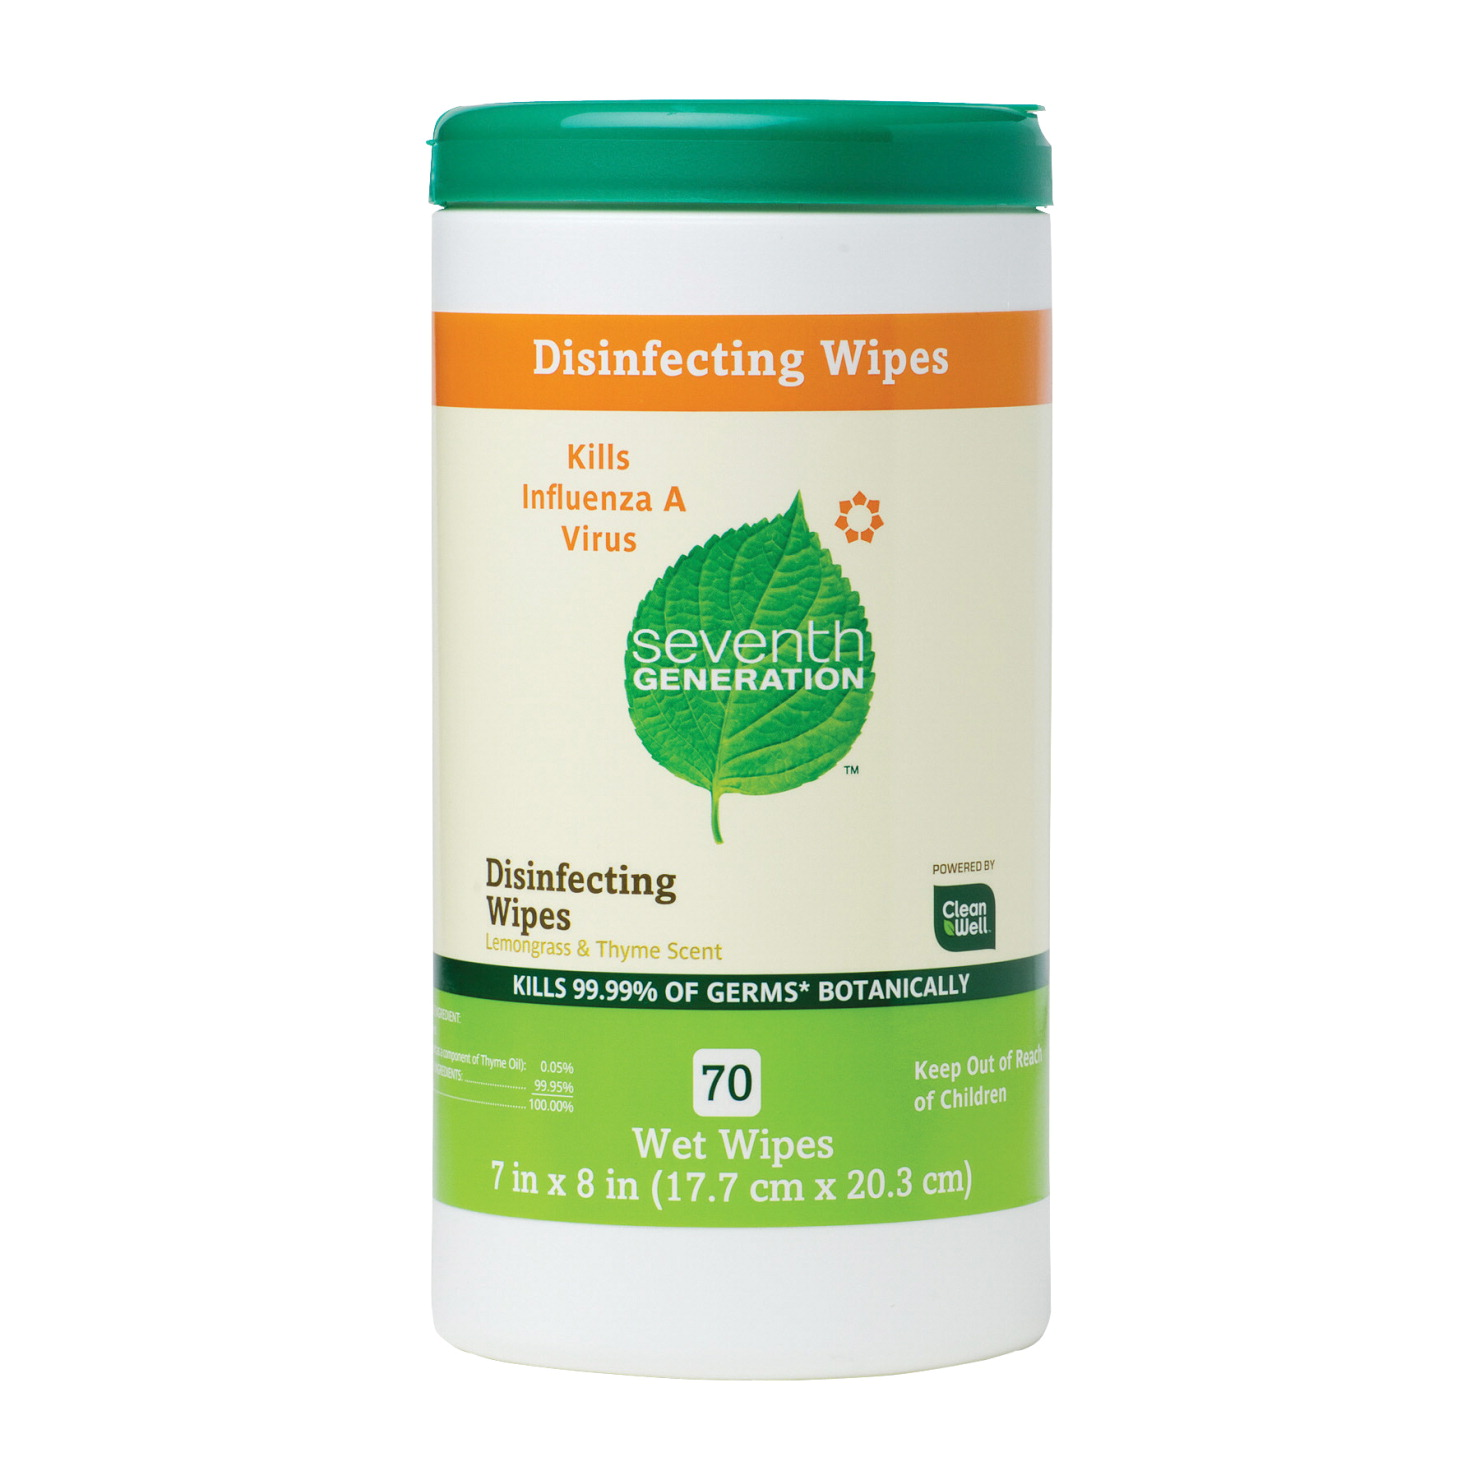 Seventh Generation Disinfecting Wipe, 8 X 7 in, Thyme/Lemongrass Scent, White, Pack of 70